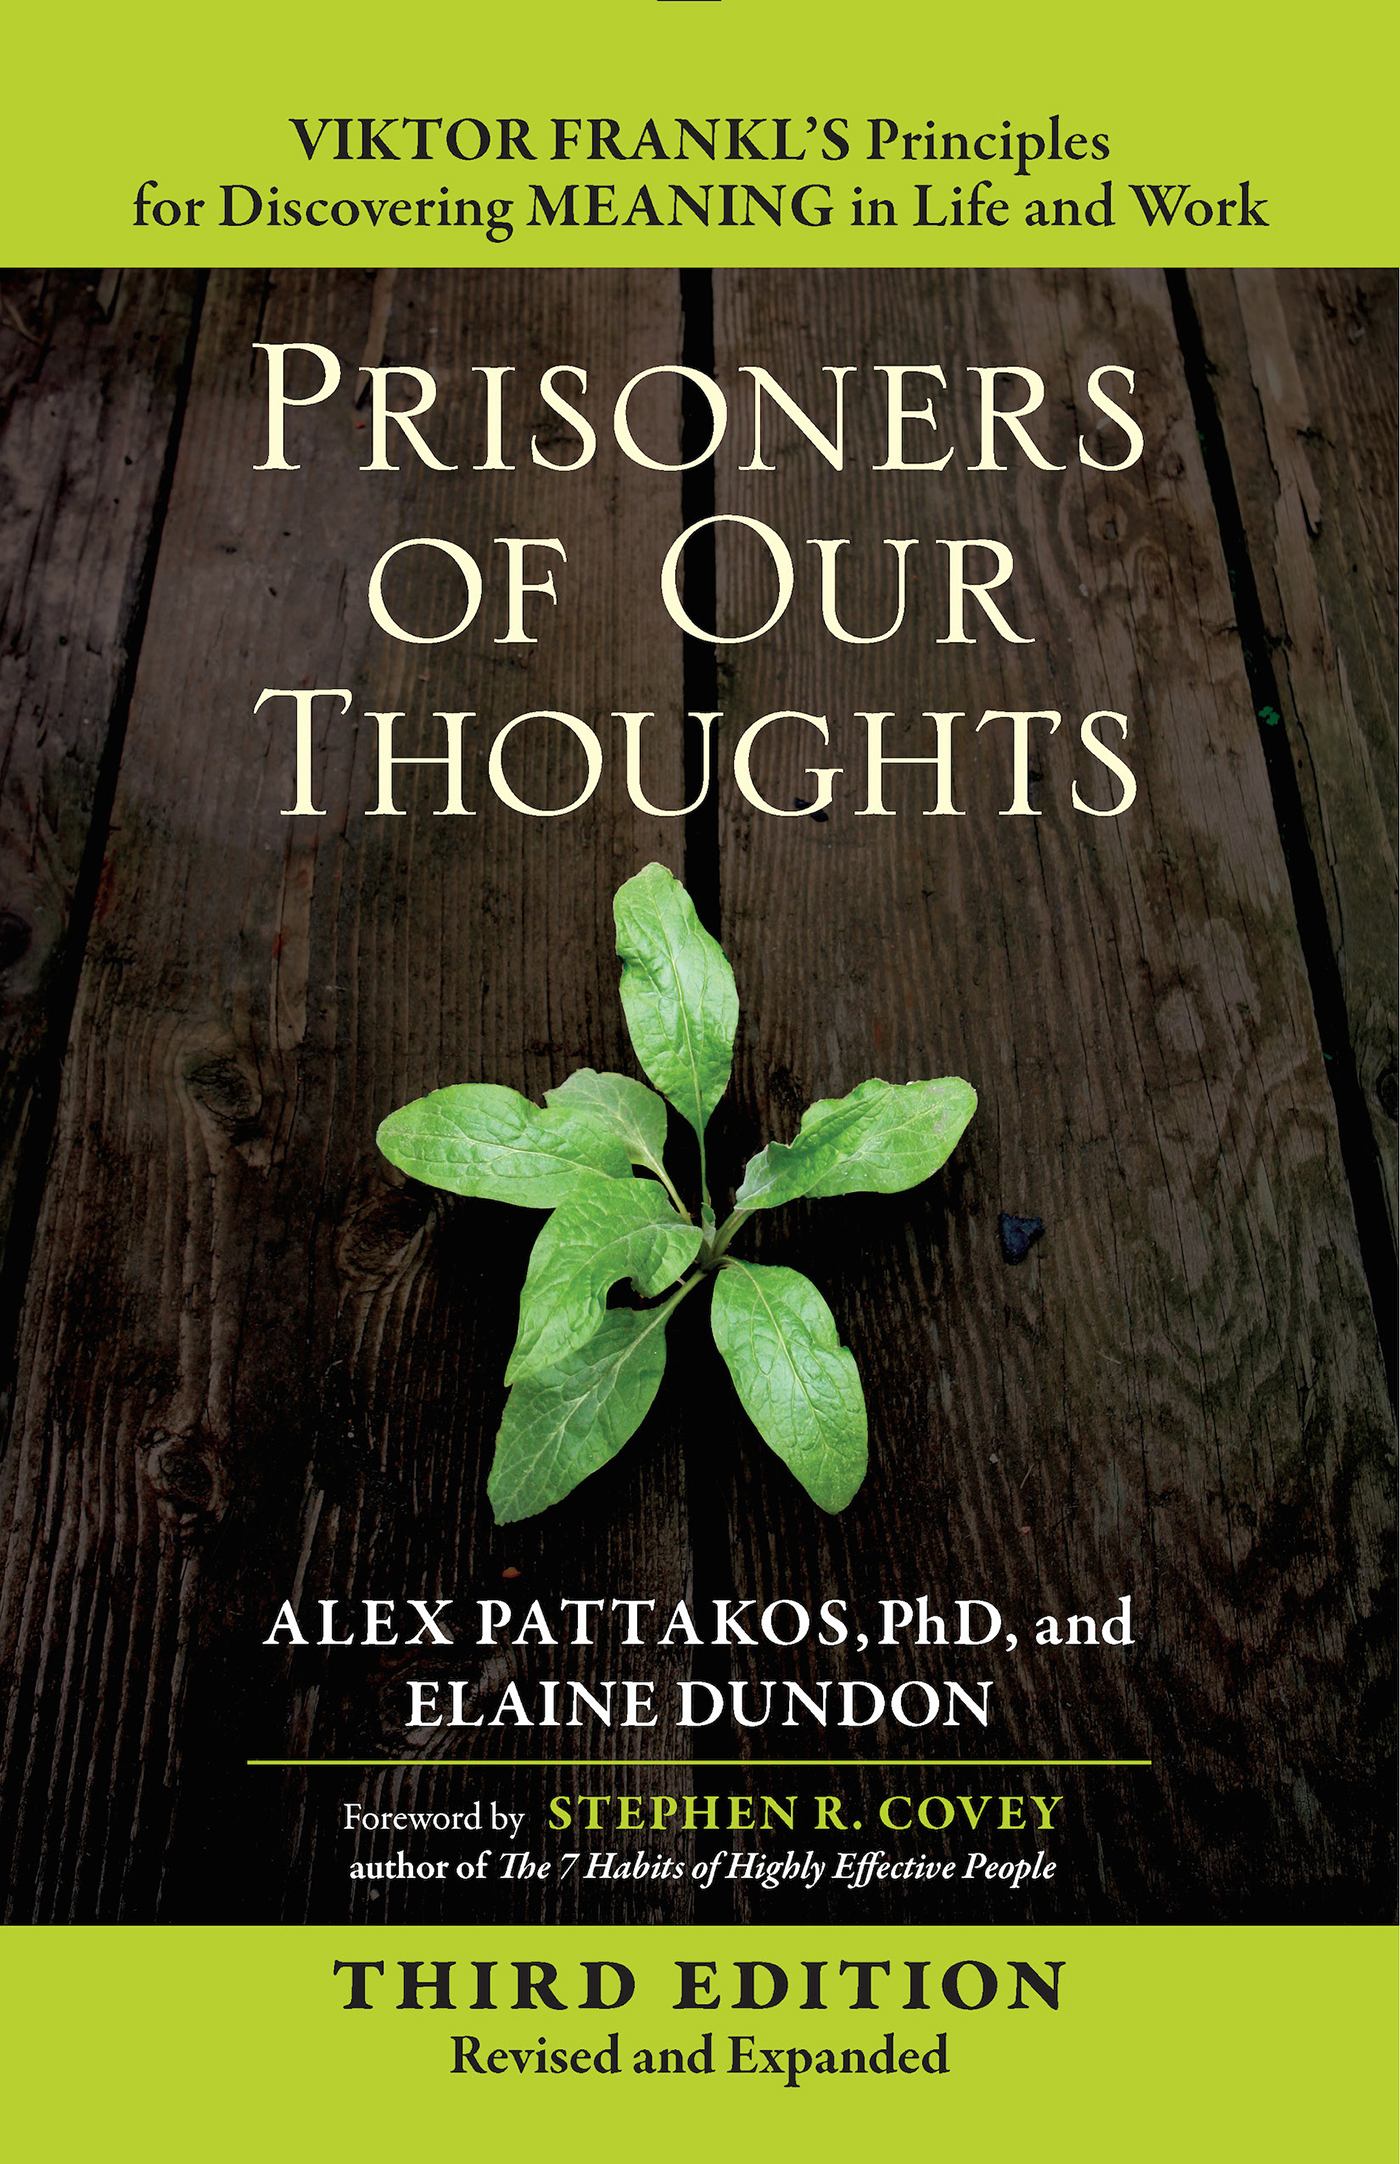 Prisoners of Our Thoughts [electronic resource] : Viktor Frankl's Principles for Discovering Meaning in Life and Work